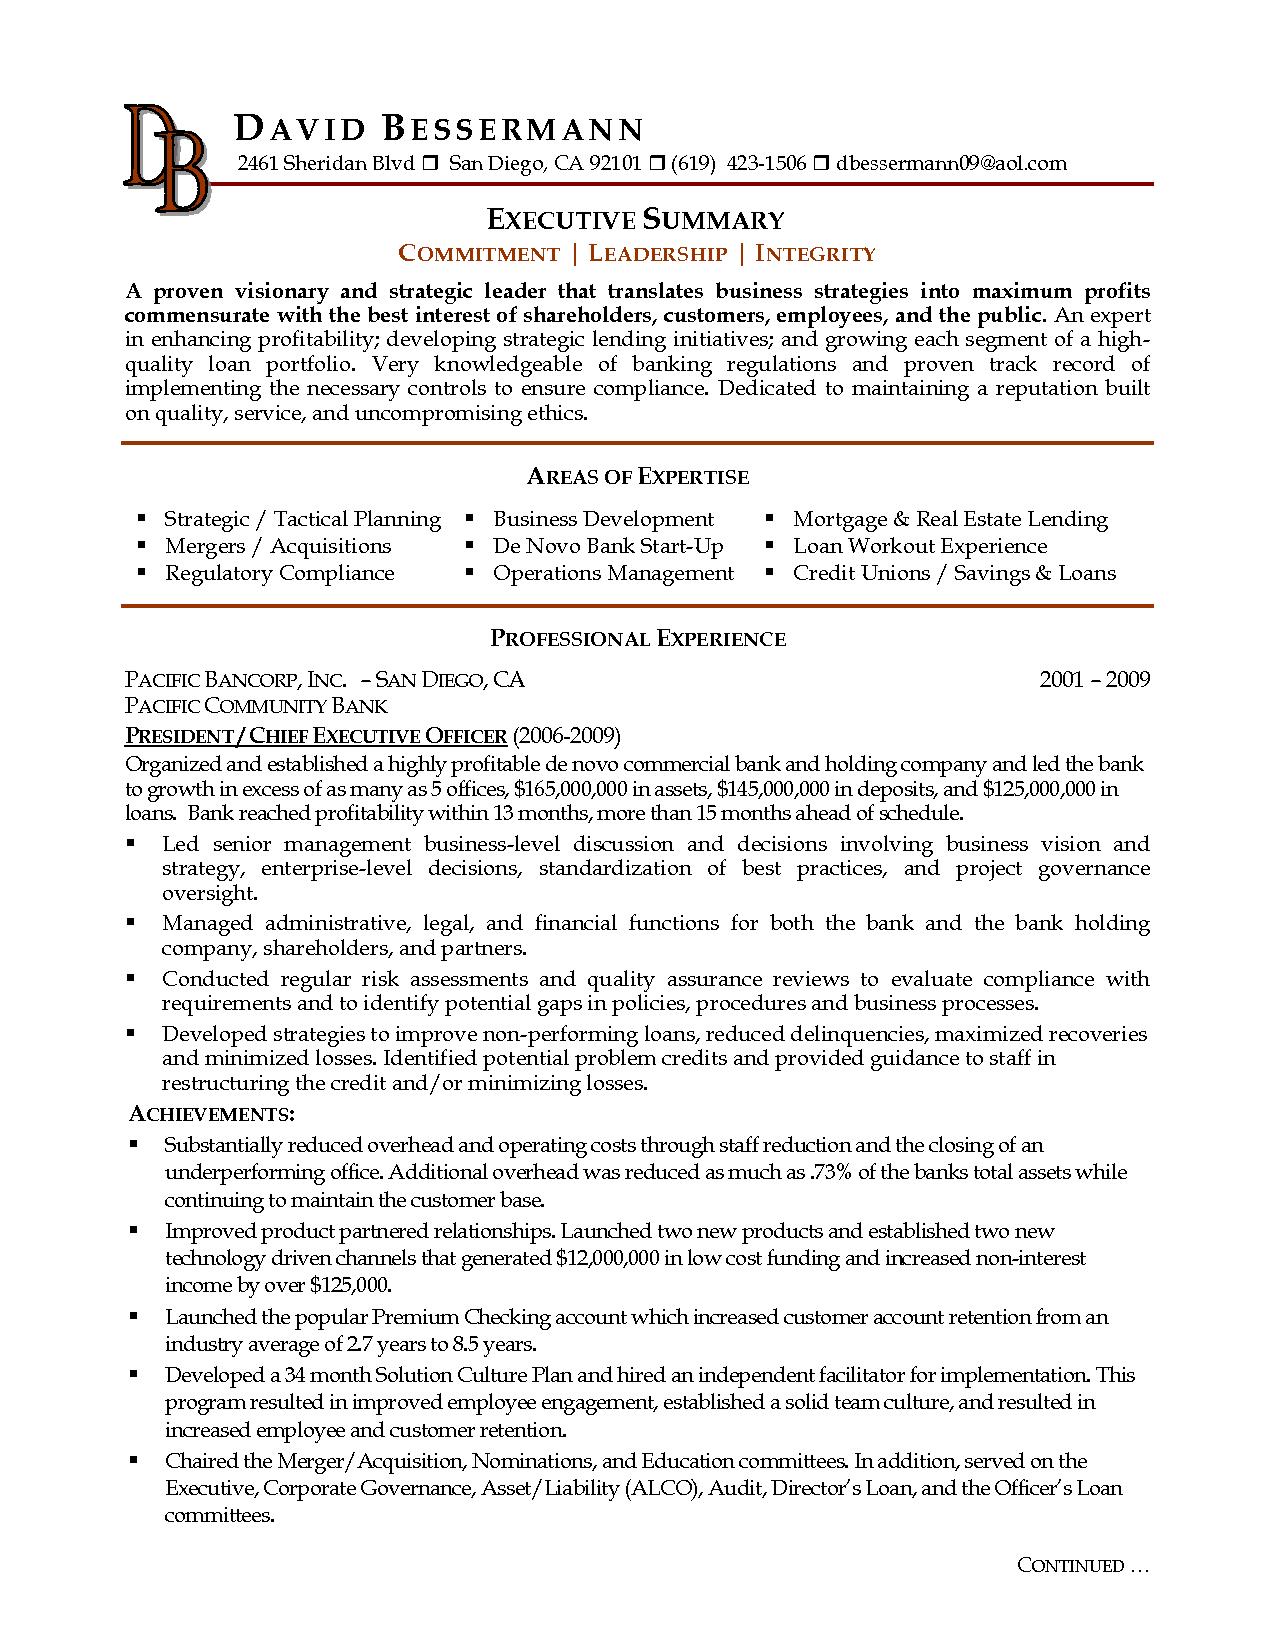 resume-summary-7 Sample Curriculum Vitae Summary Letter on for accountant partner, science research, graduate school, for phd, for administrative assistant, for professional contract, medical doctor, offer letter,